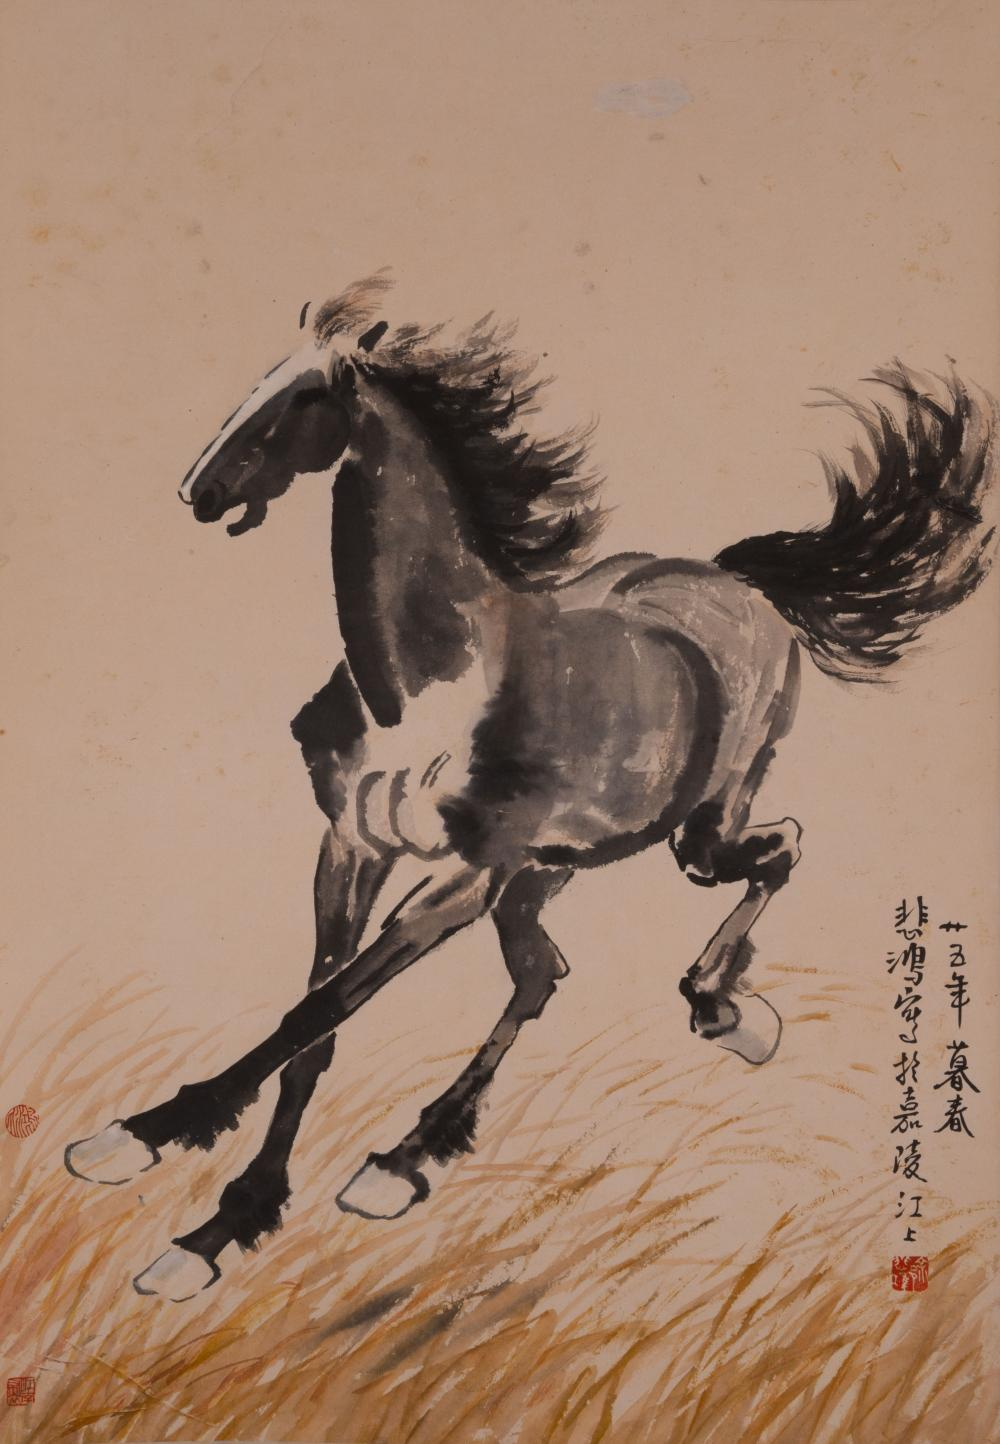 Sold Price Ancient Chinese Painting And Calligraphy Horse Xu Beihong July 5 0120 5 00 Pm Pdt